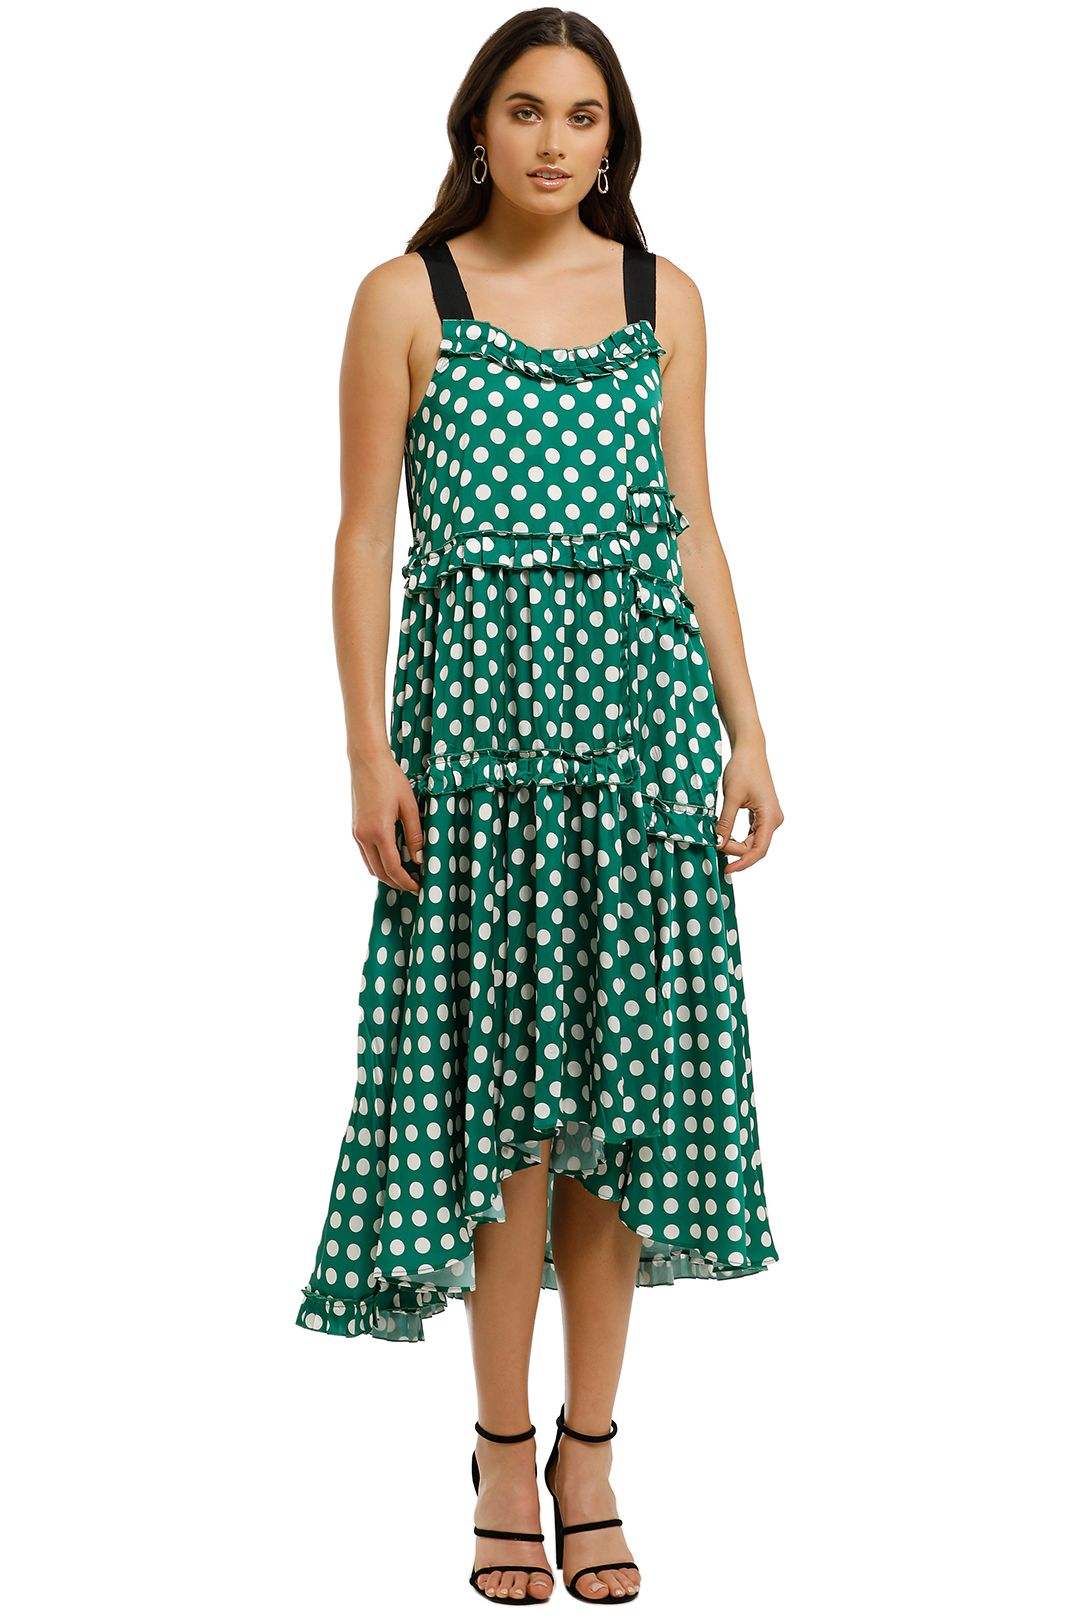 Trelise-Cooper-Pleat-Wave-Dress-Green-Front